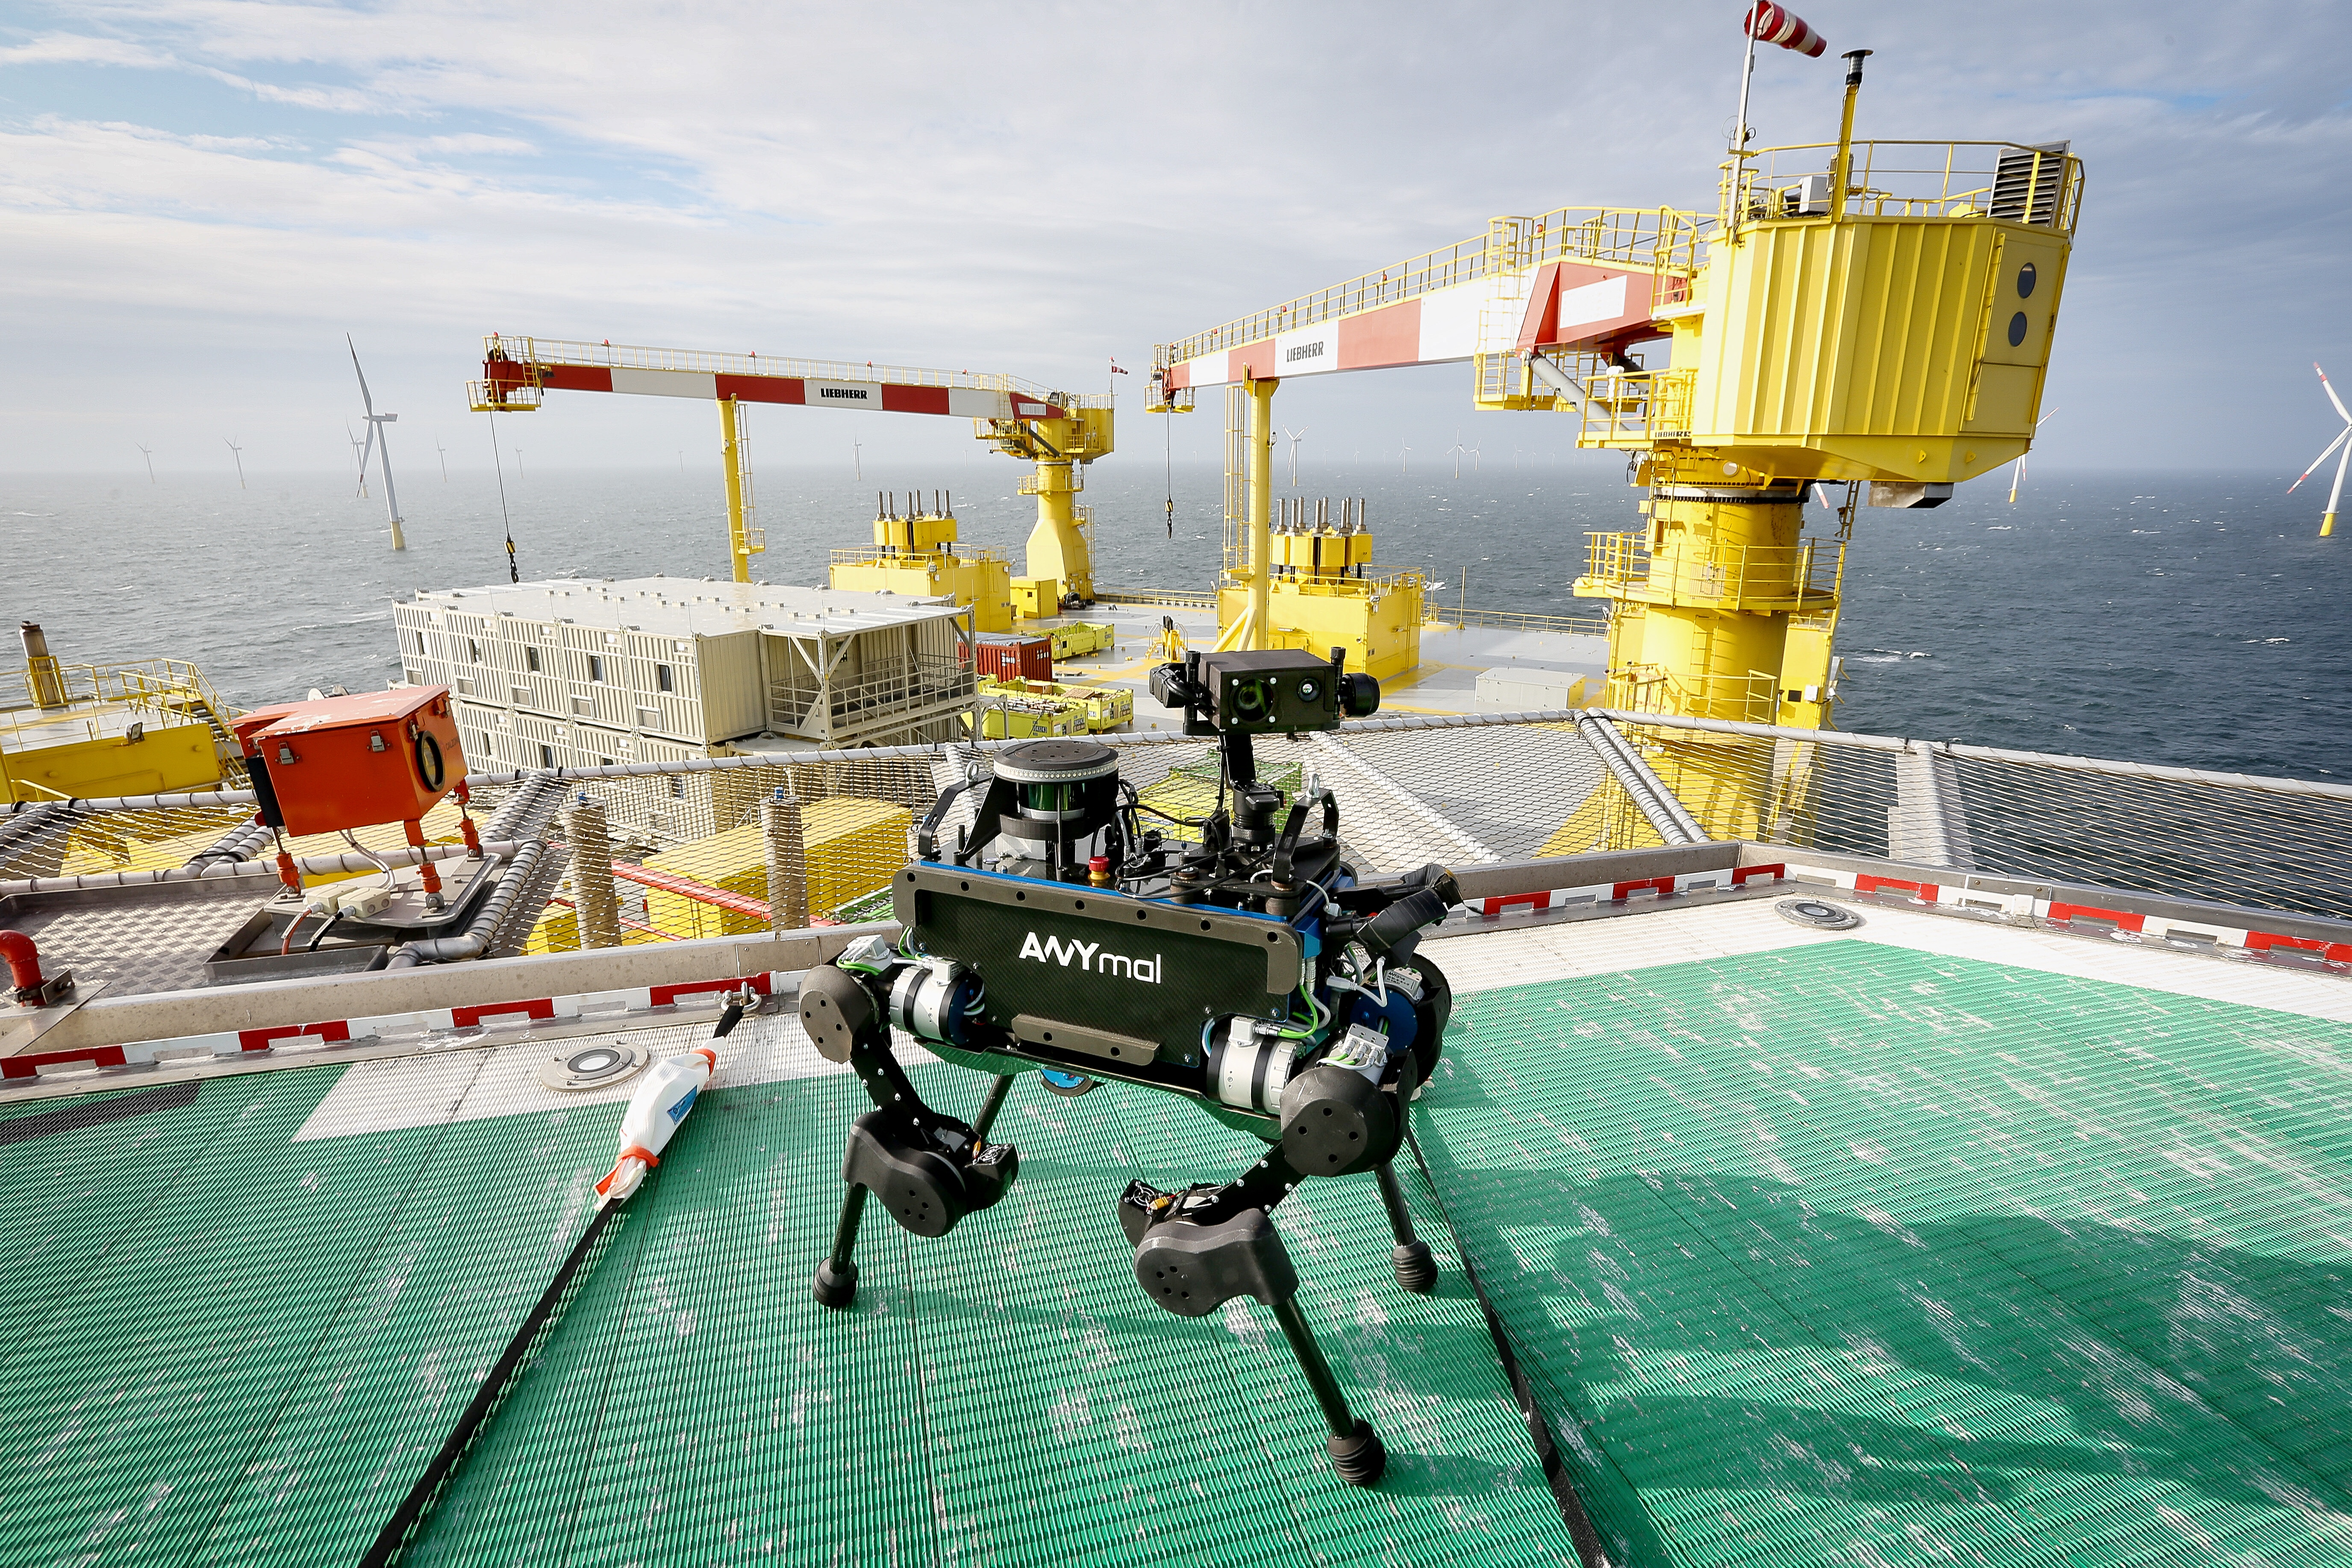 The robot, called ANYmal, performed various inspection tasks on the platform as part of a week-long pilot guided by Dutch-German transmission system operator TenneT.